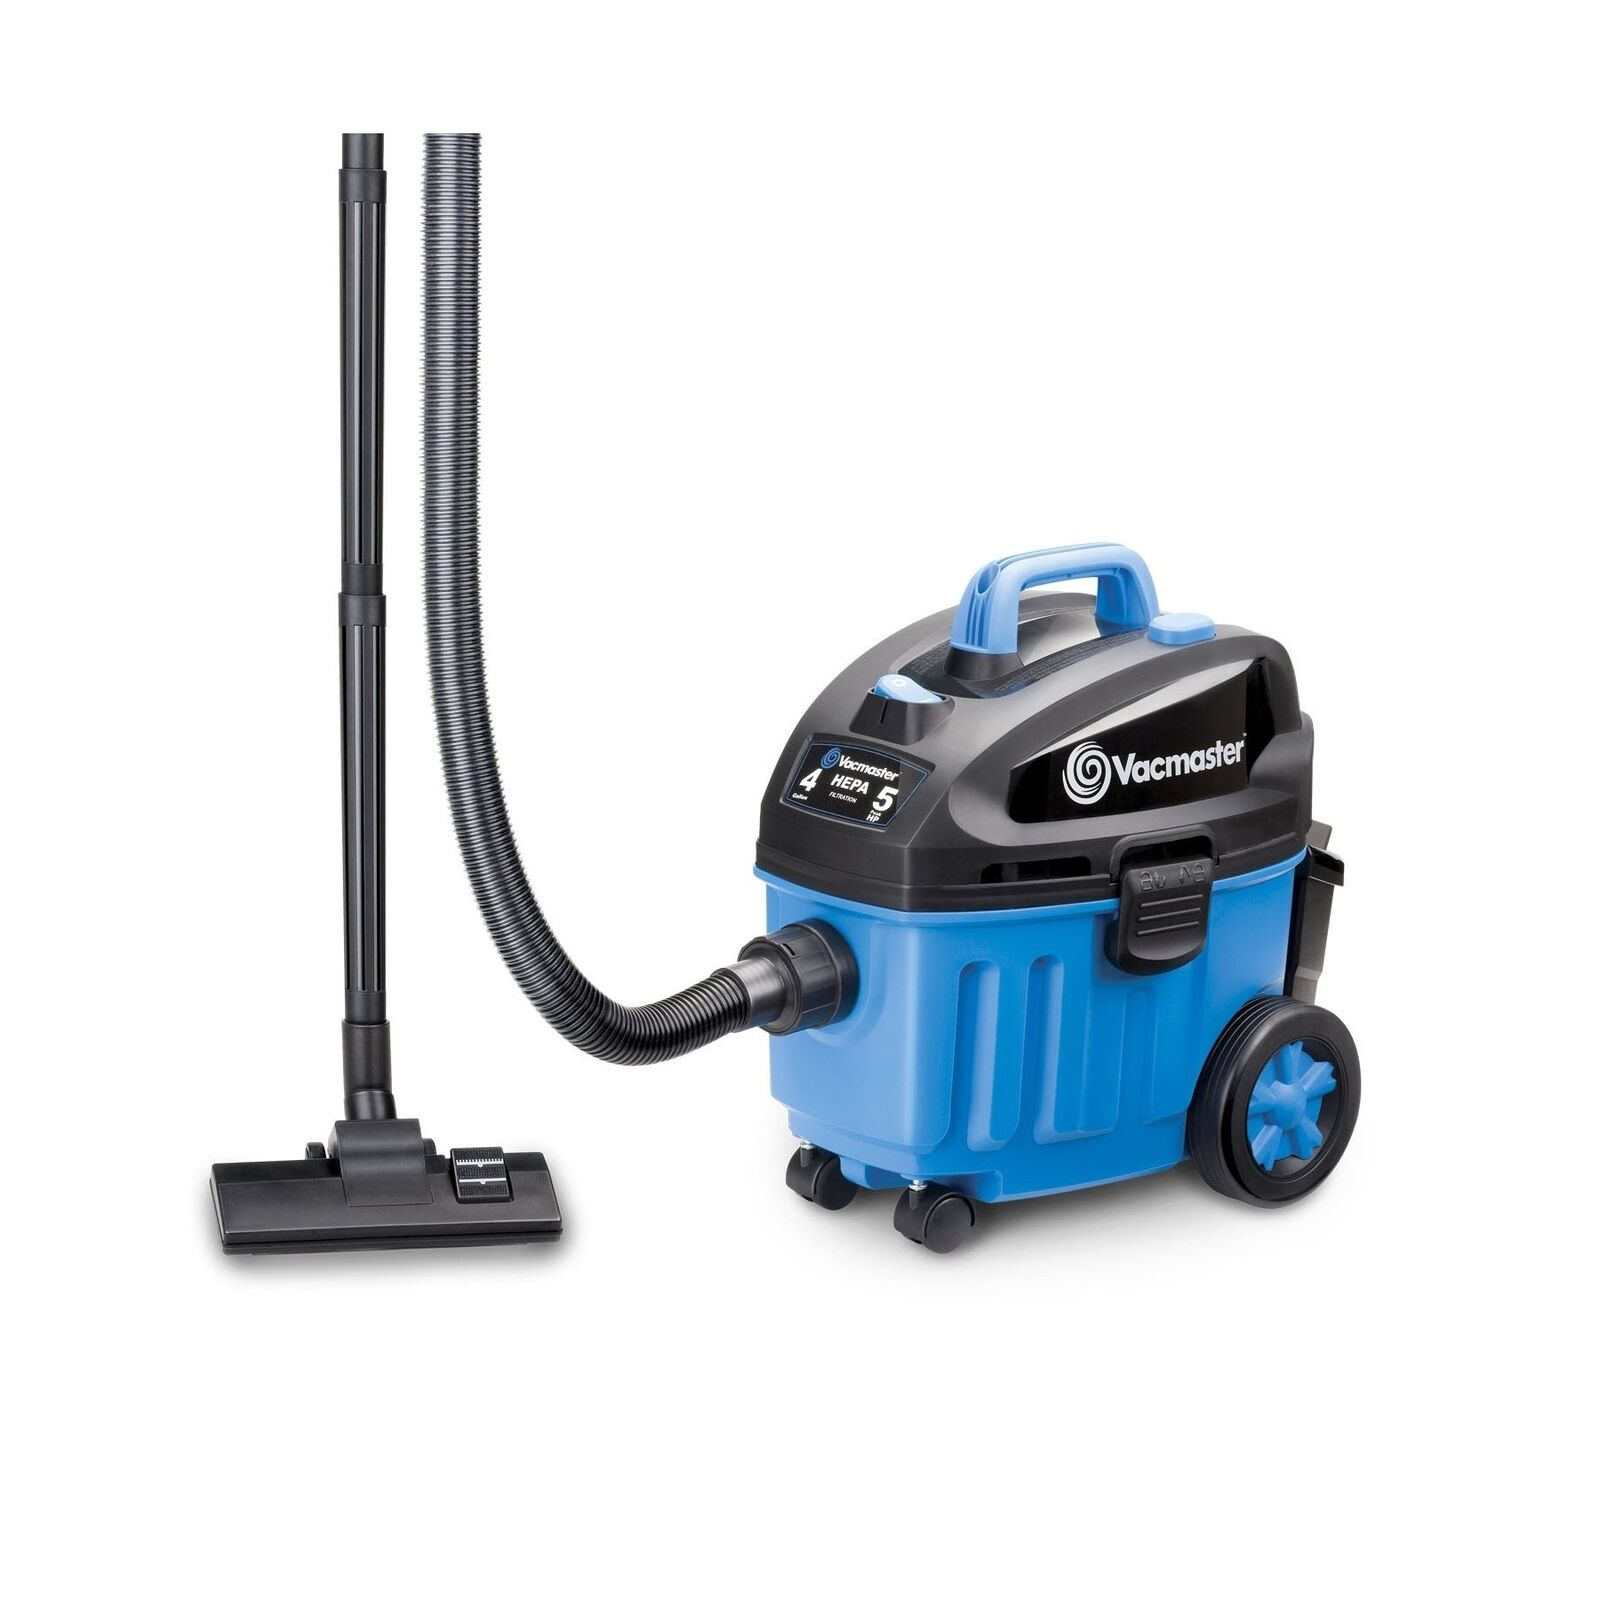 Vacmaster 4 Gallon, 5 Peak HP with 2-Stage Industrial Motor Wet Dry Floor Vac...